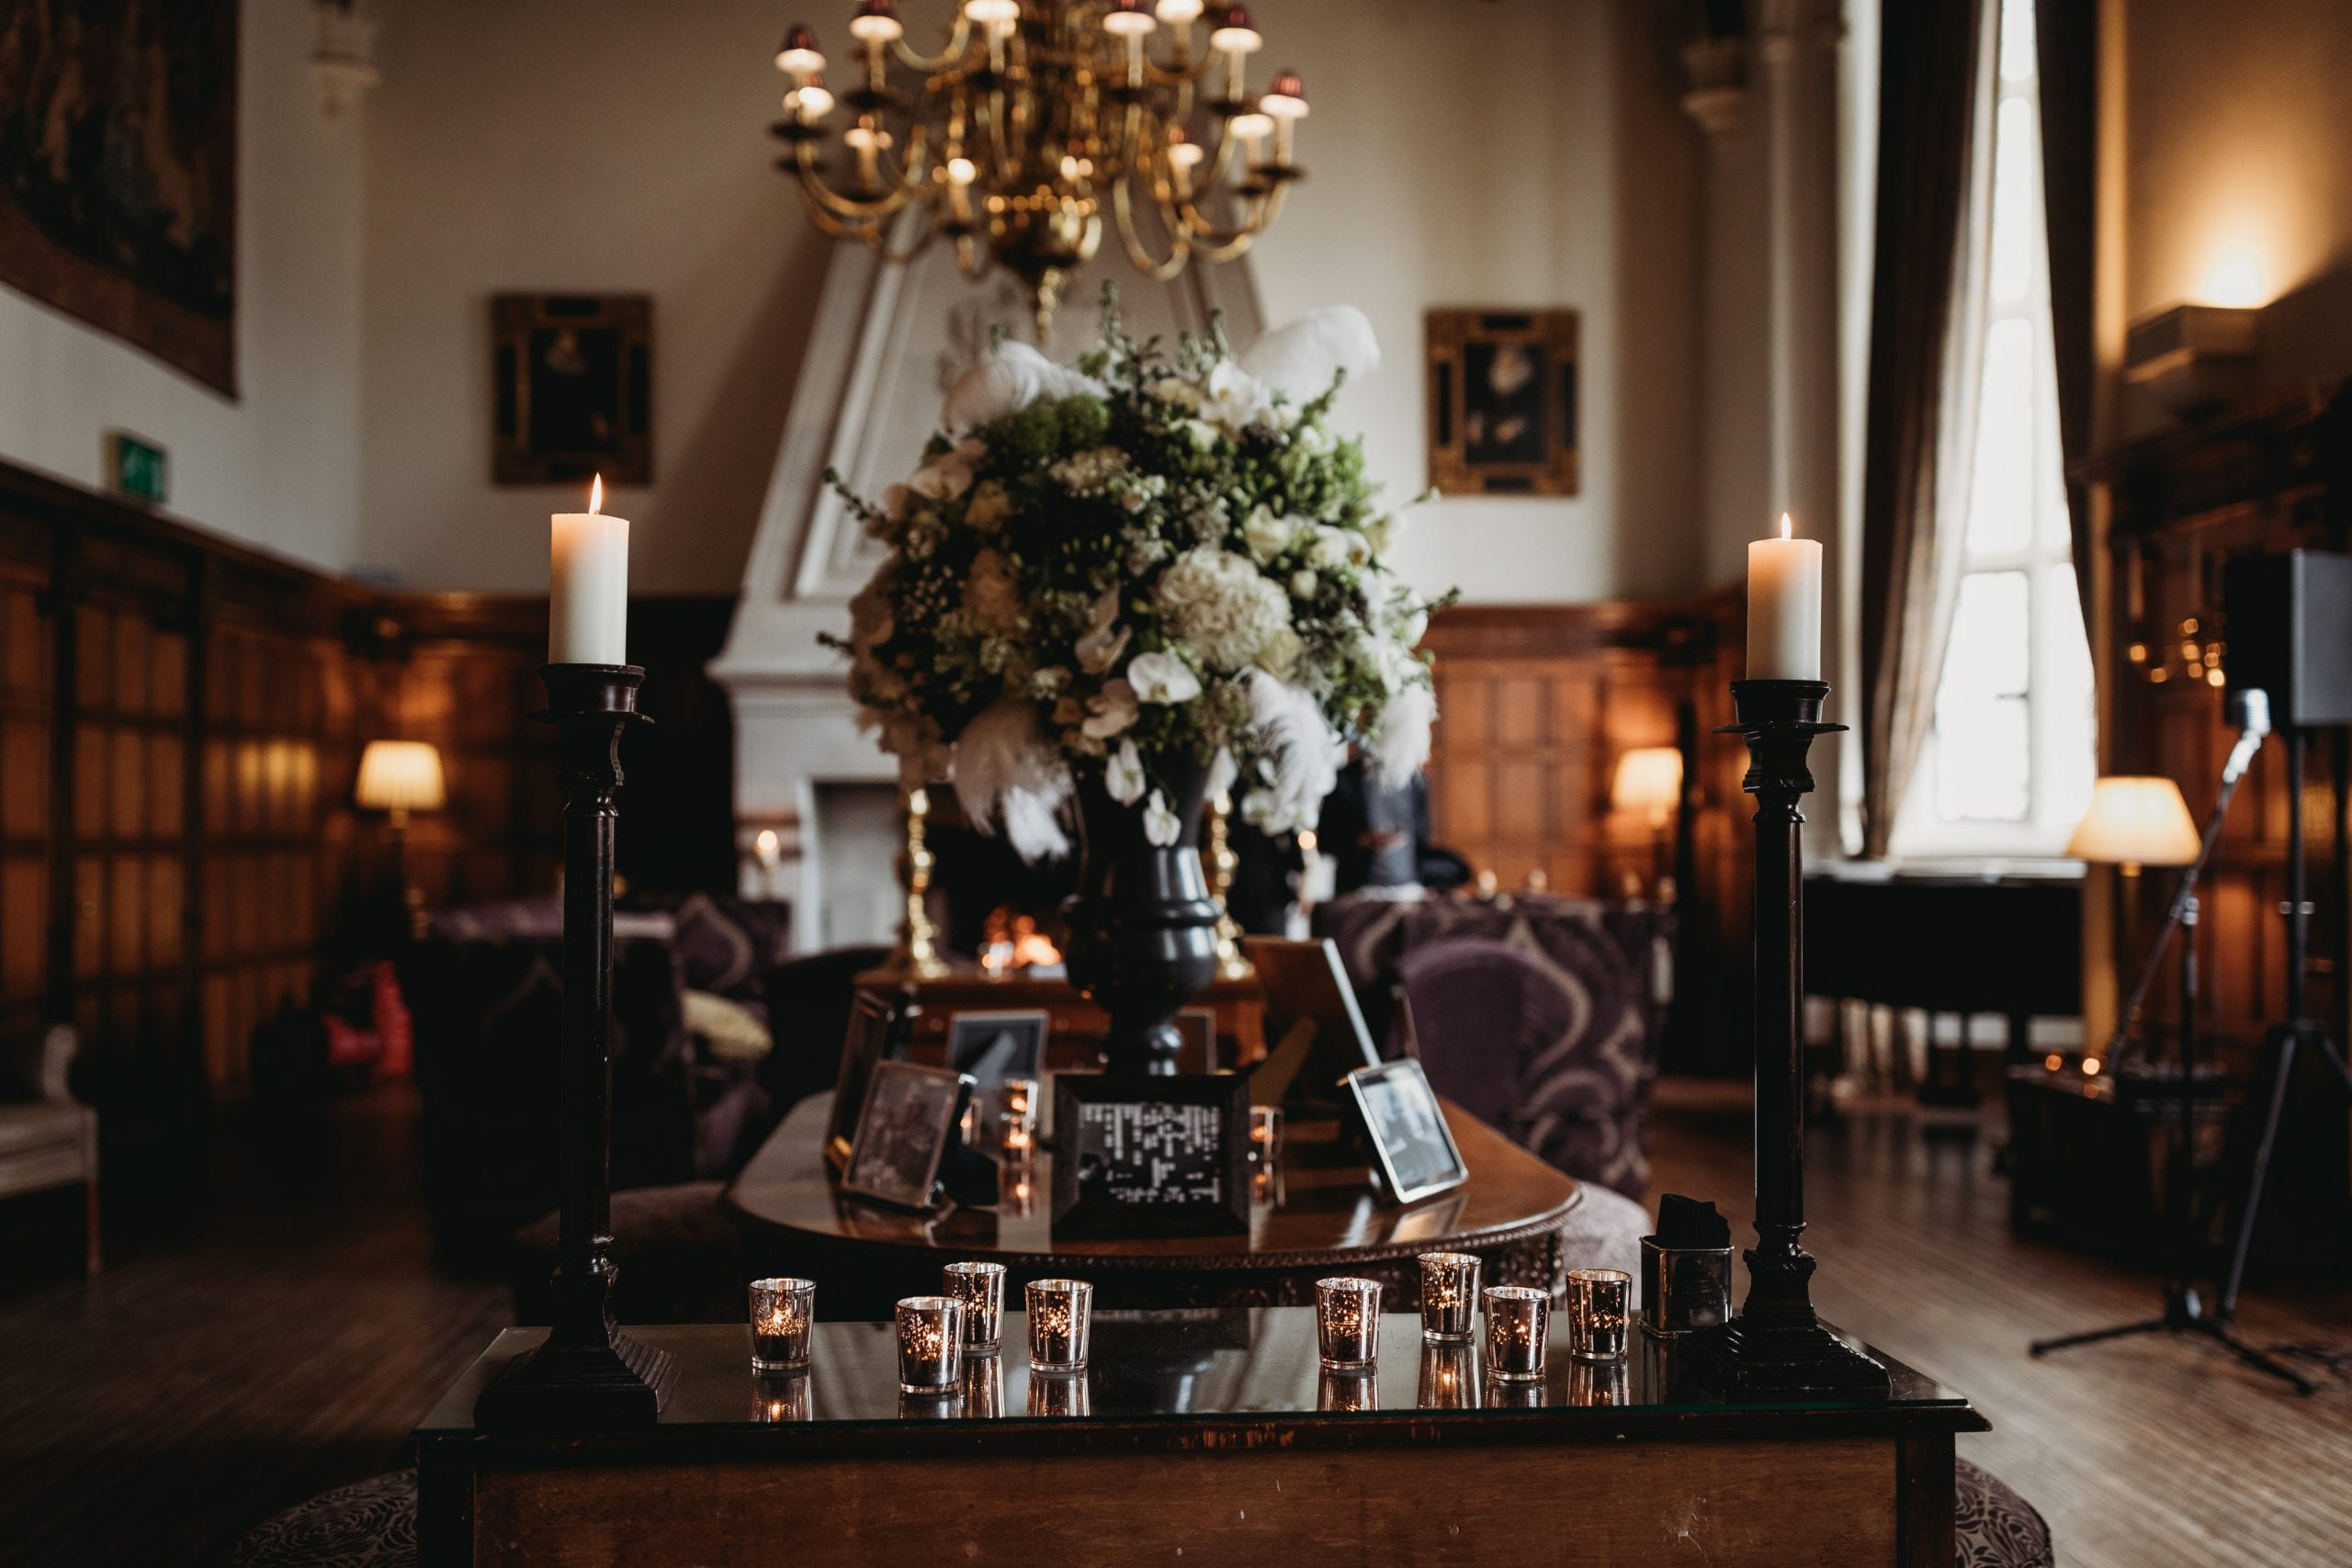 Room details at a Danesfield House wedding